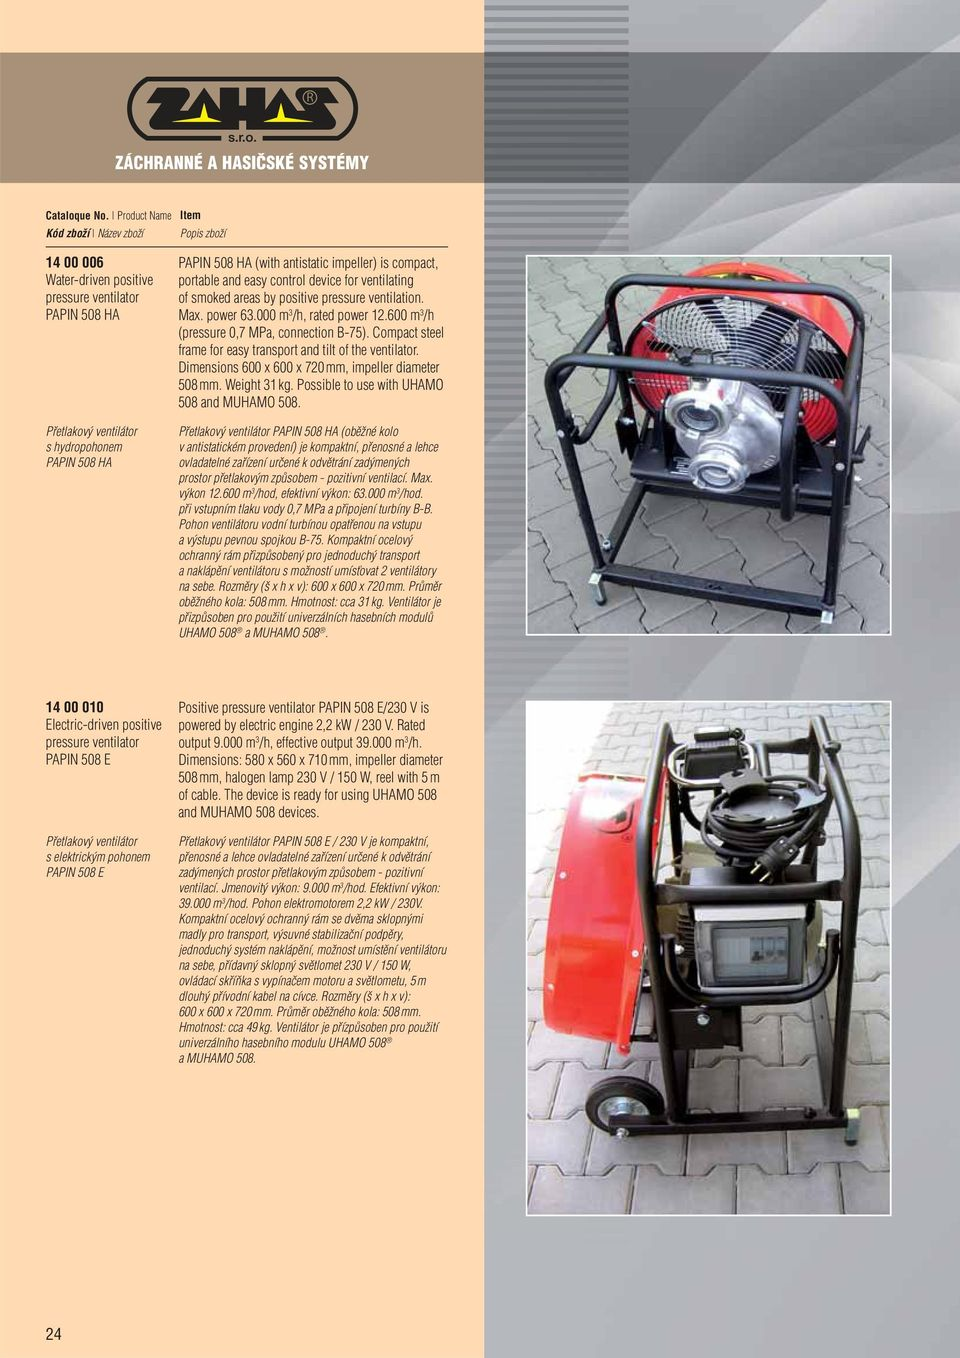 Compact steel frame for easy transport and tilt of the ventilator. Dimensions 600 x 600 x 720 mm, impeller diameter 508 mm. Weight 31 kg. Possible to use with UHAMO 508 and MUHAMO 508.